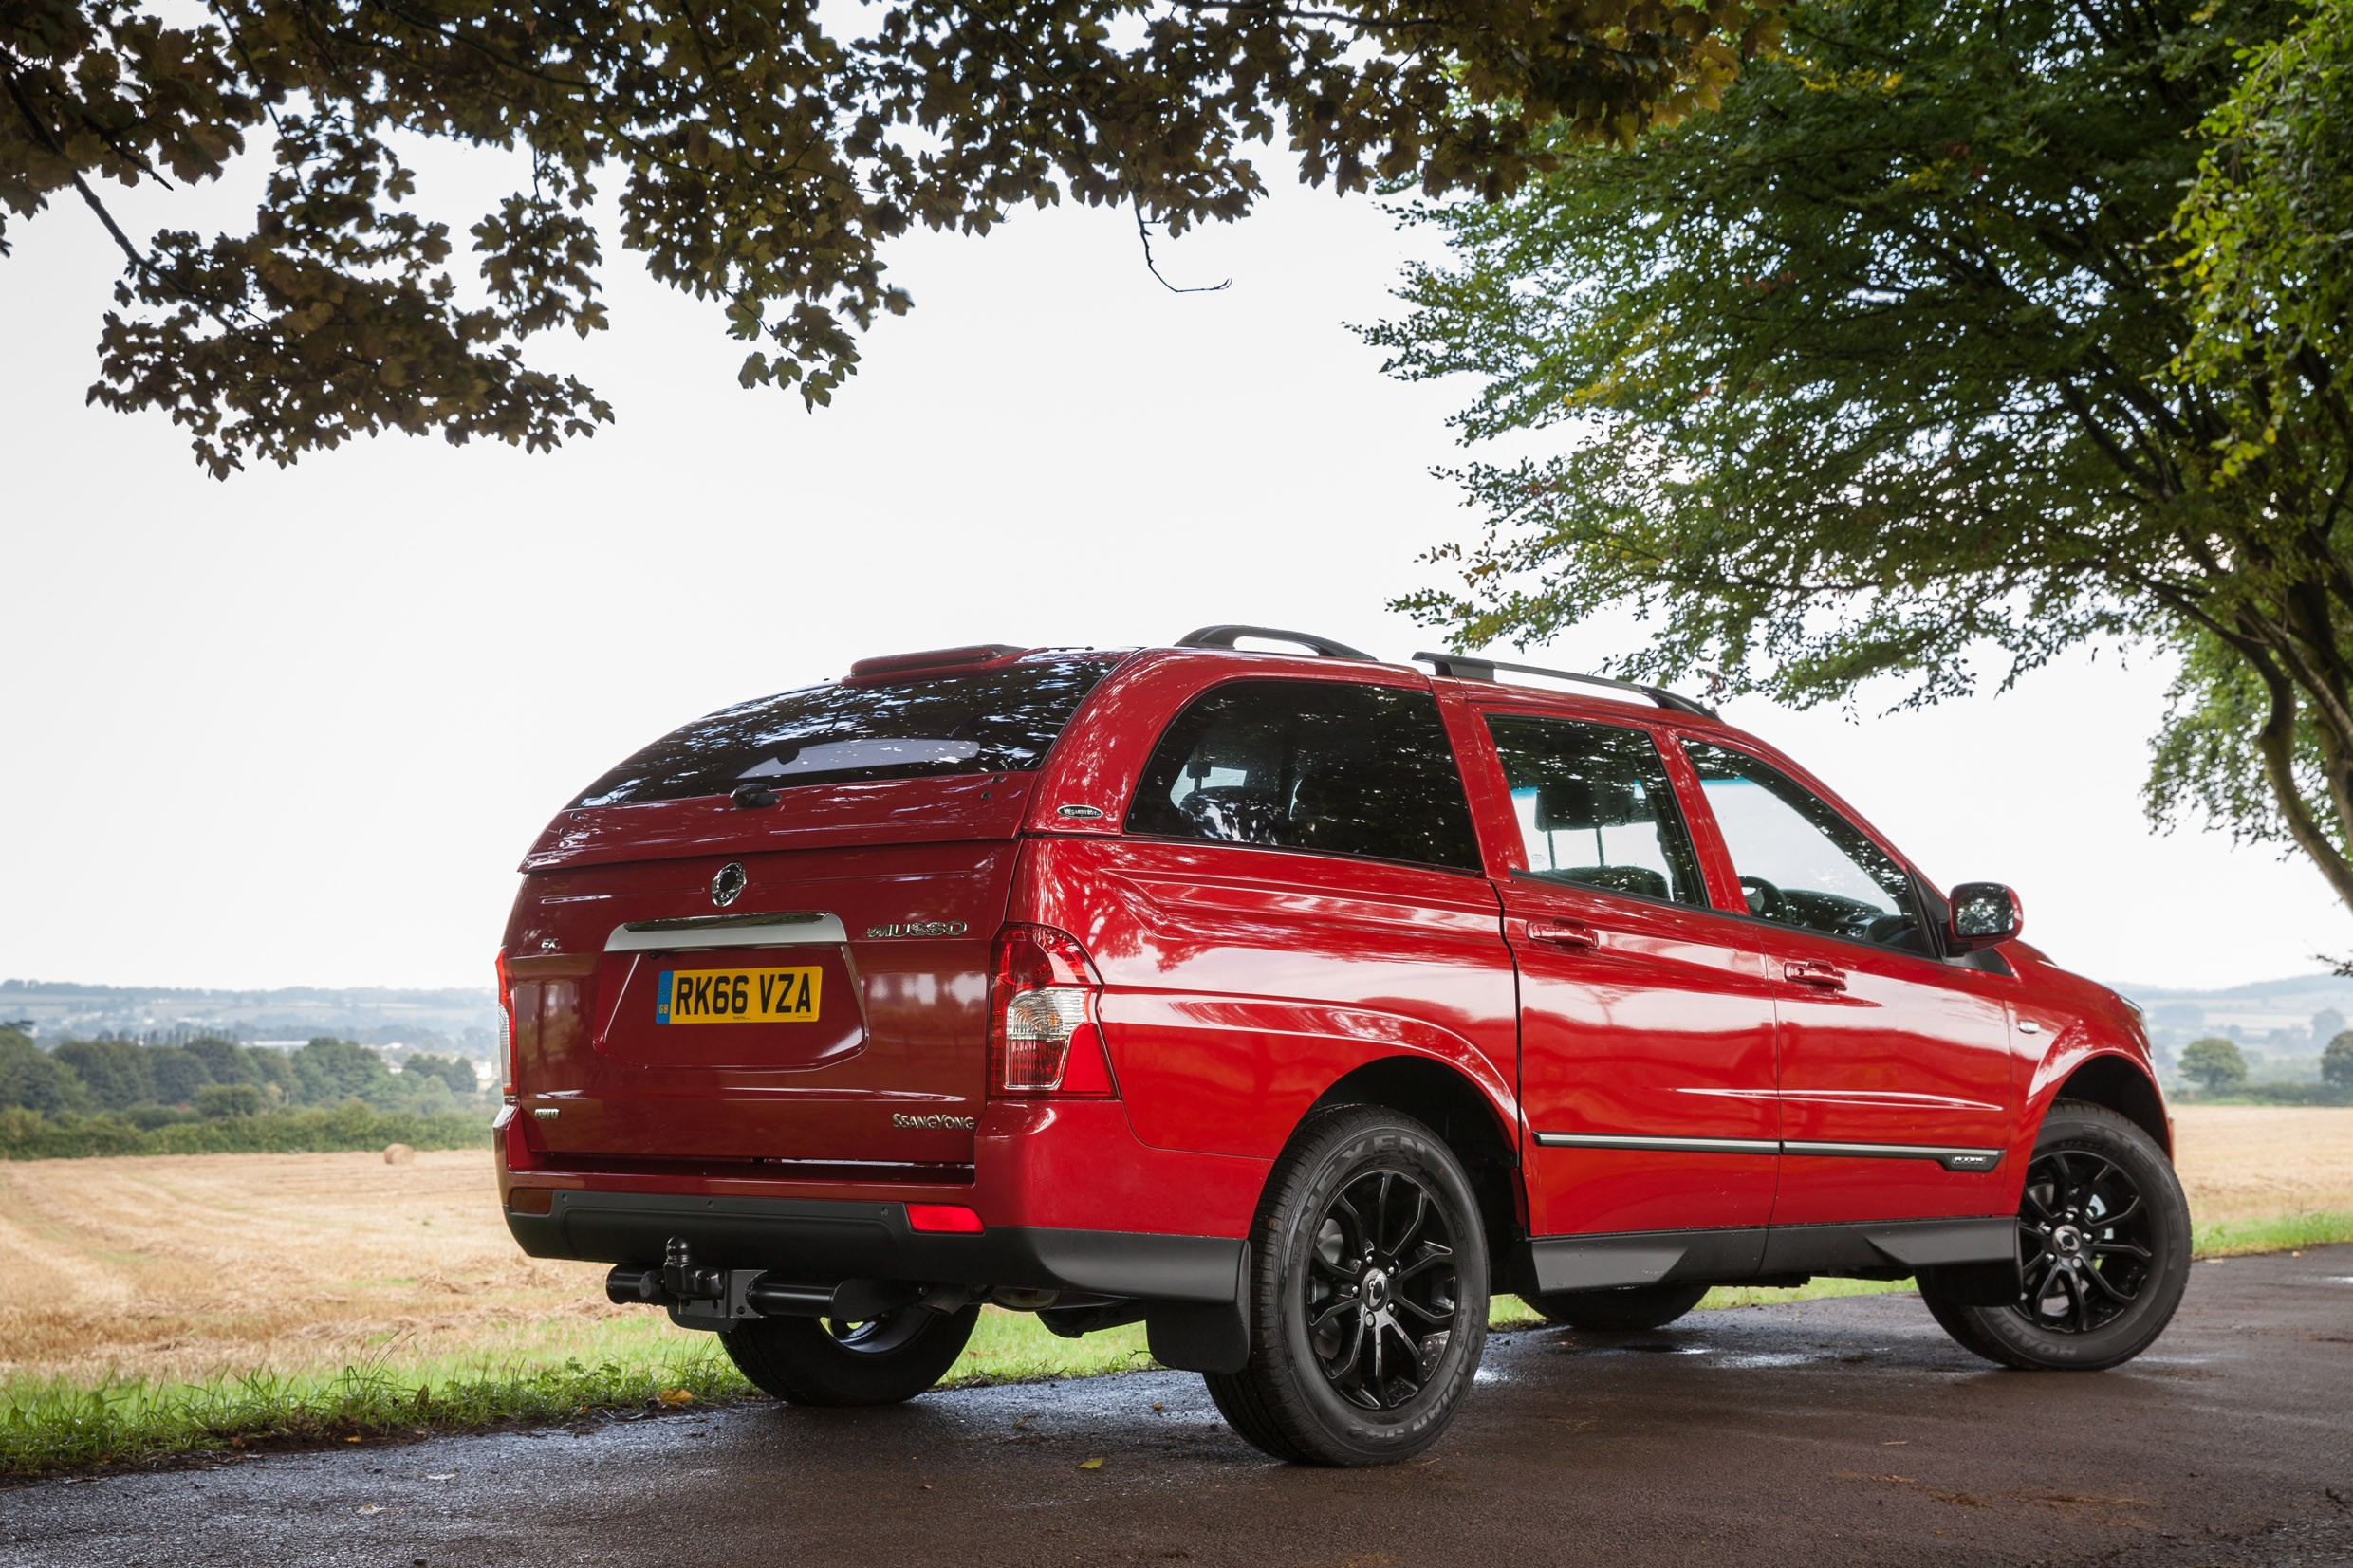 2017 Ssangyong Musso Is A Seriously Cheap One Tonne Pickup